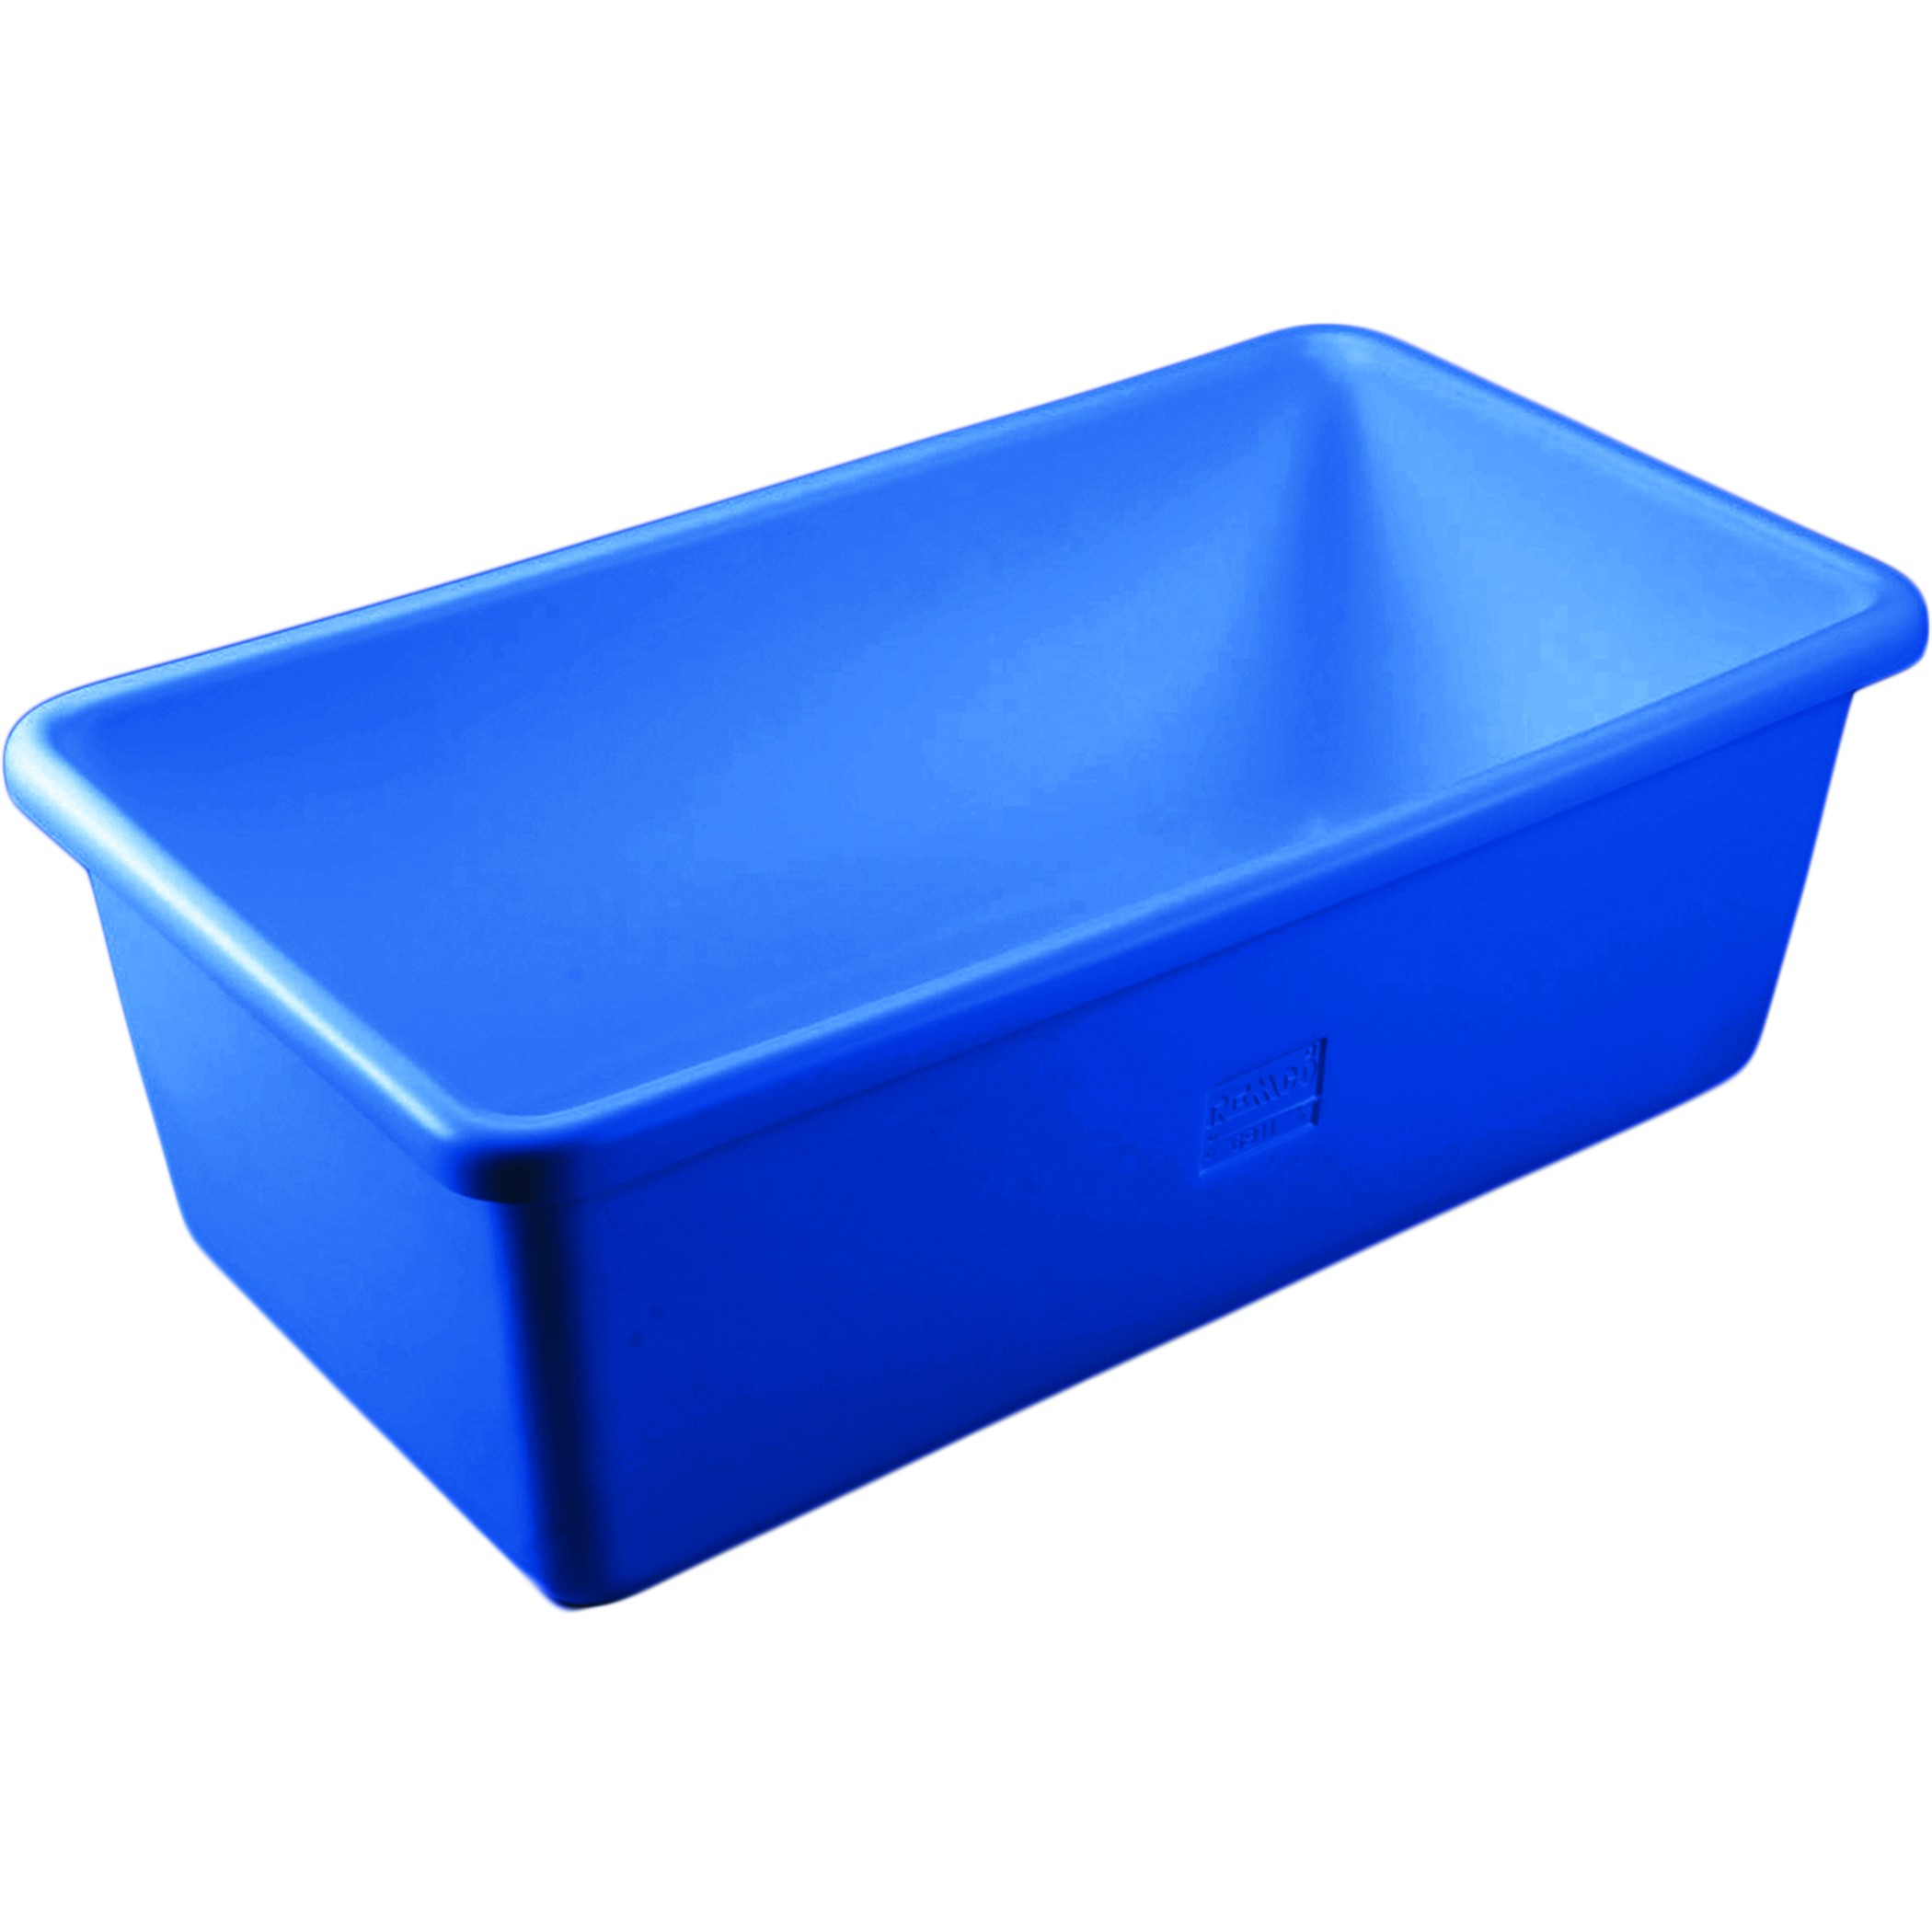 Rectangular Transport Storage Tubs With or Without Drains - Premium ...